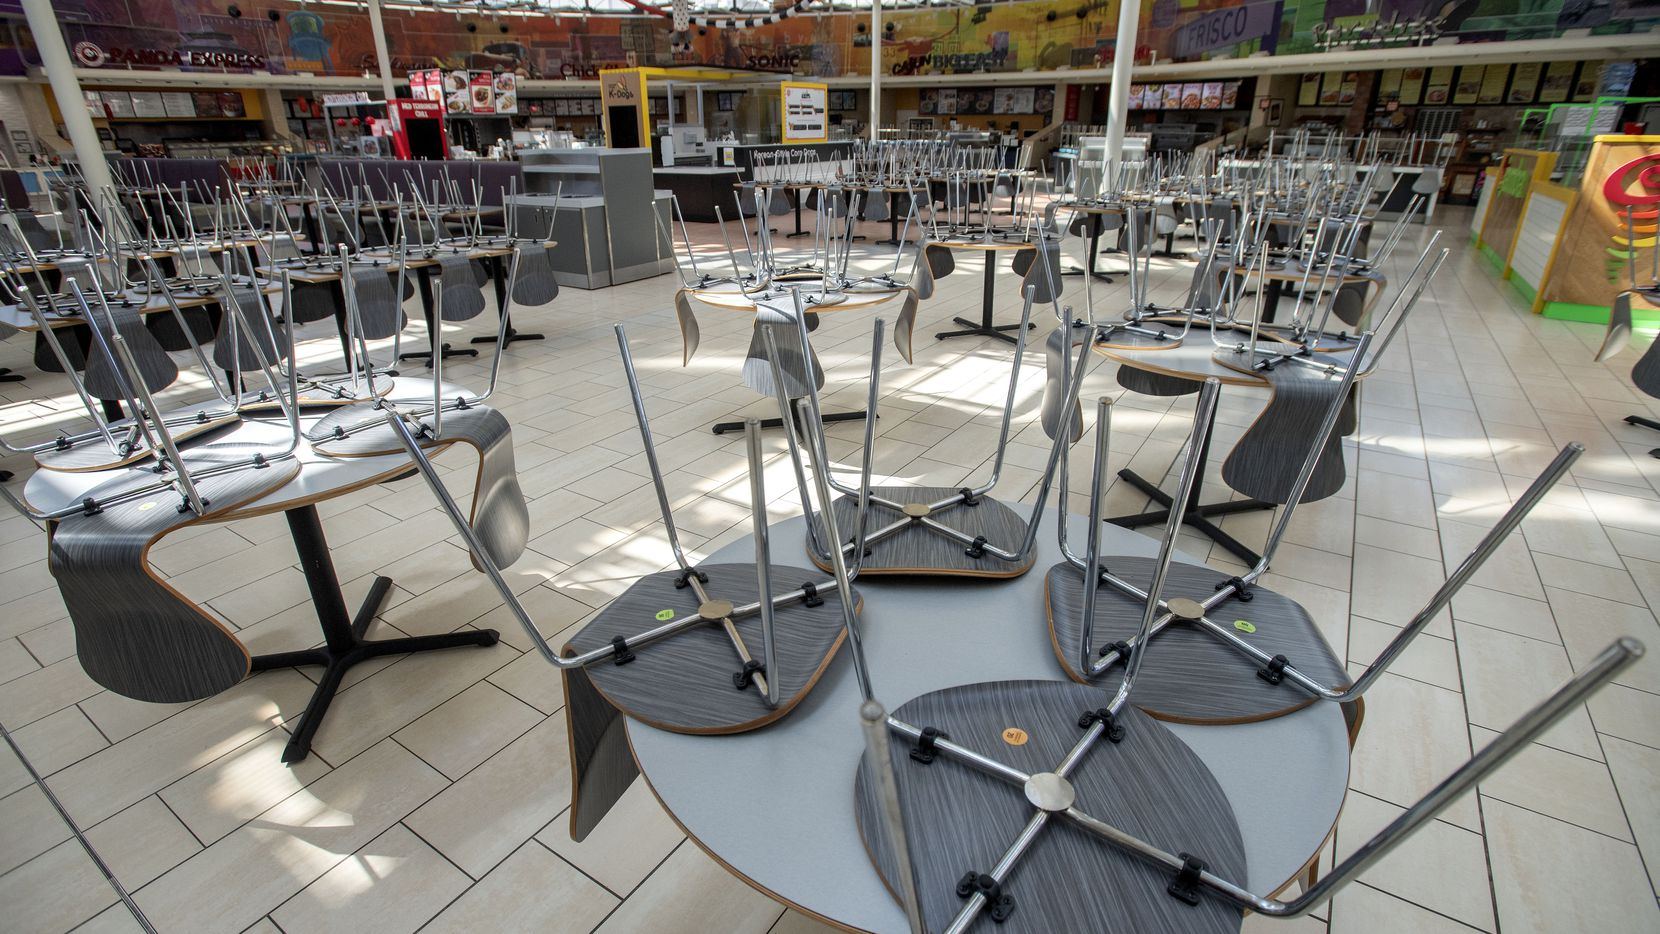 Chairs rest on tables in an empty food court in Stonebriar Mall in Frisco. The coronavirus pandemic has closed many businesses throughout the country and cities like Richardson, which is anticipating $18 million in lost revenue, have begun calculating the local fallout.